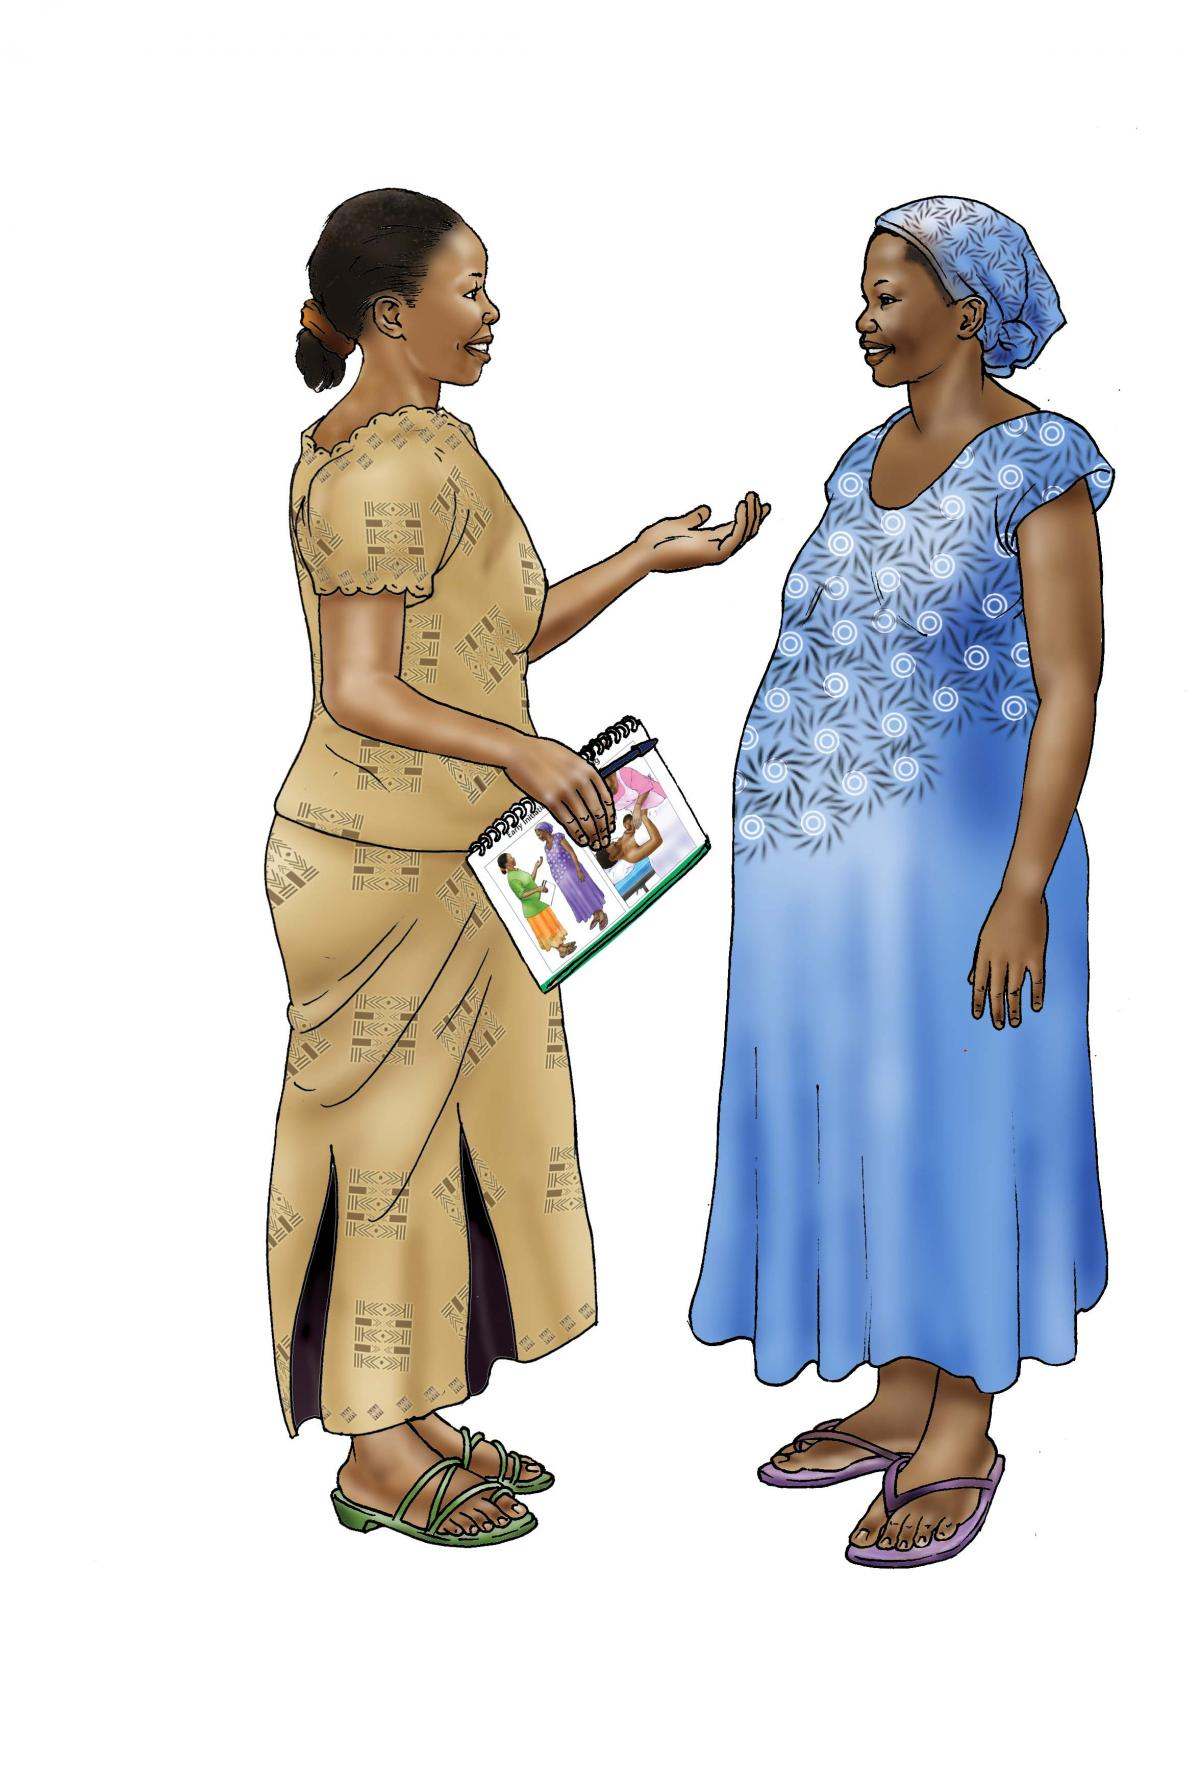 Maternal Health - Counseling - 00B - Non-country specific